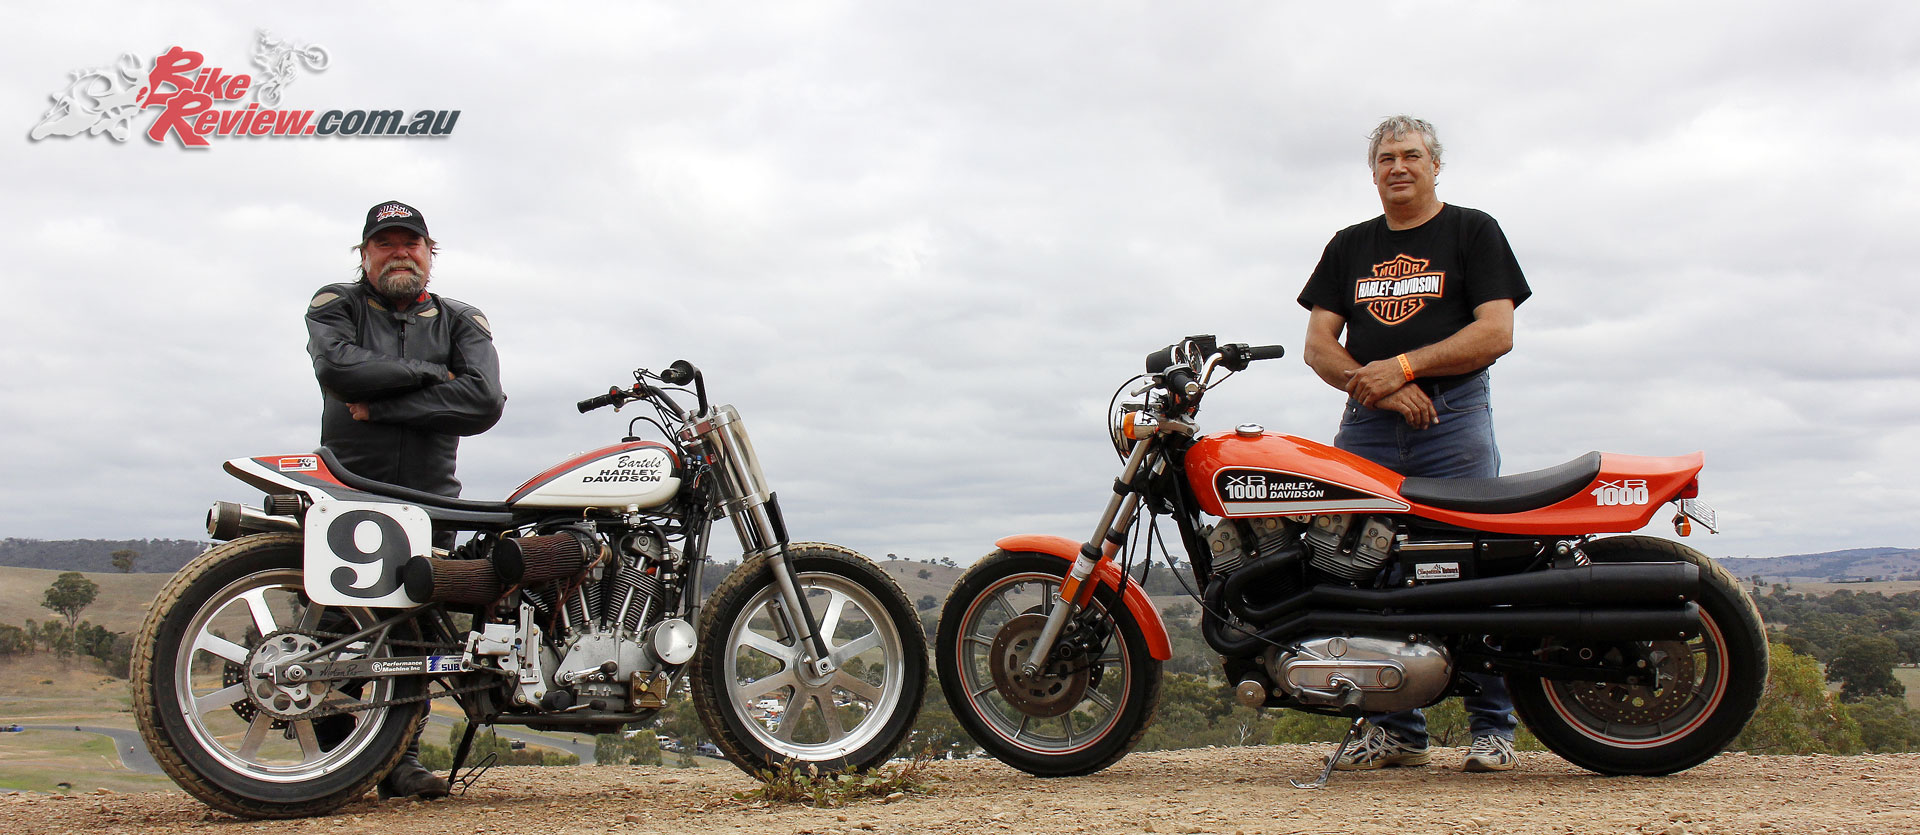 Eddy with his XR 750 Flat Tracker, and Les with his XR 1000